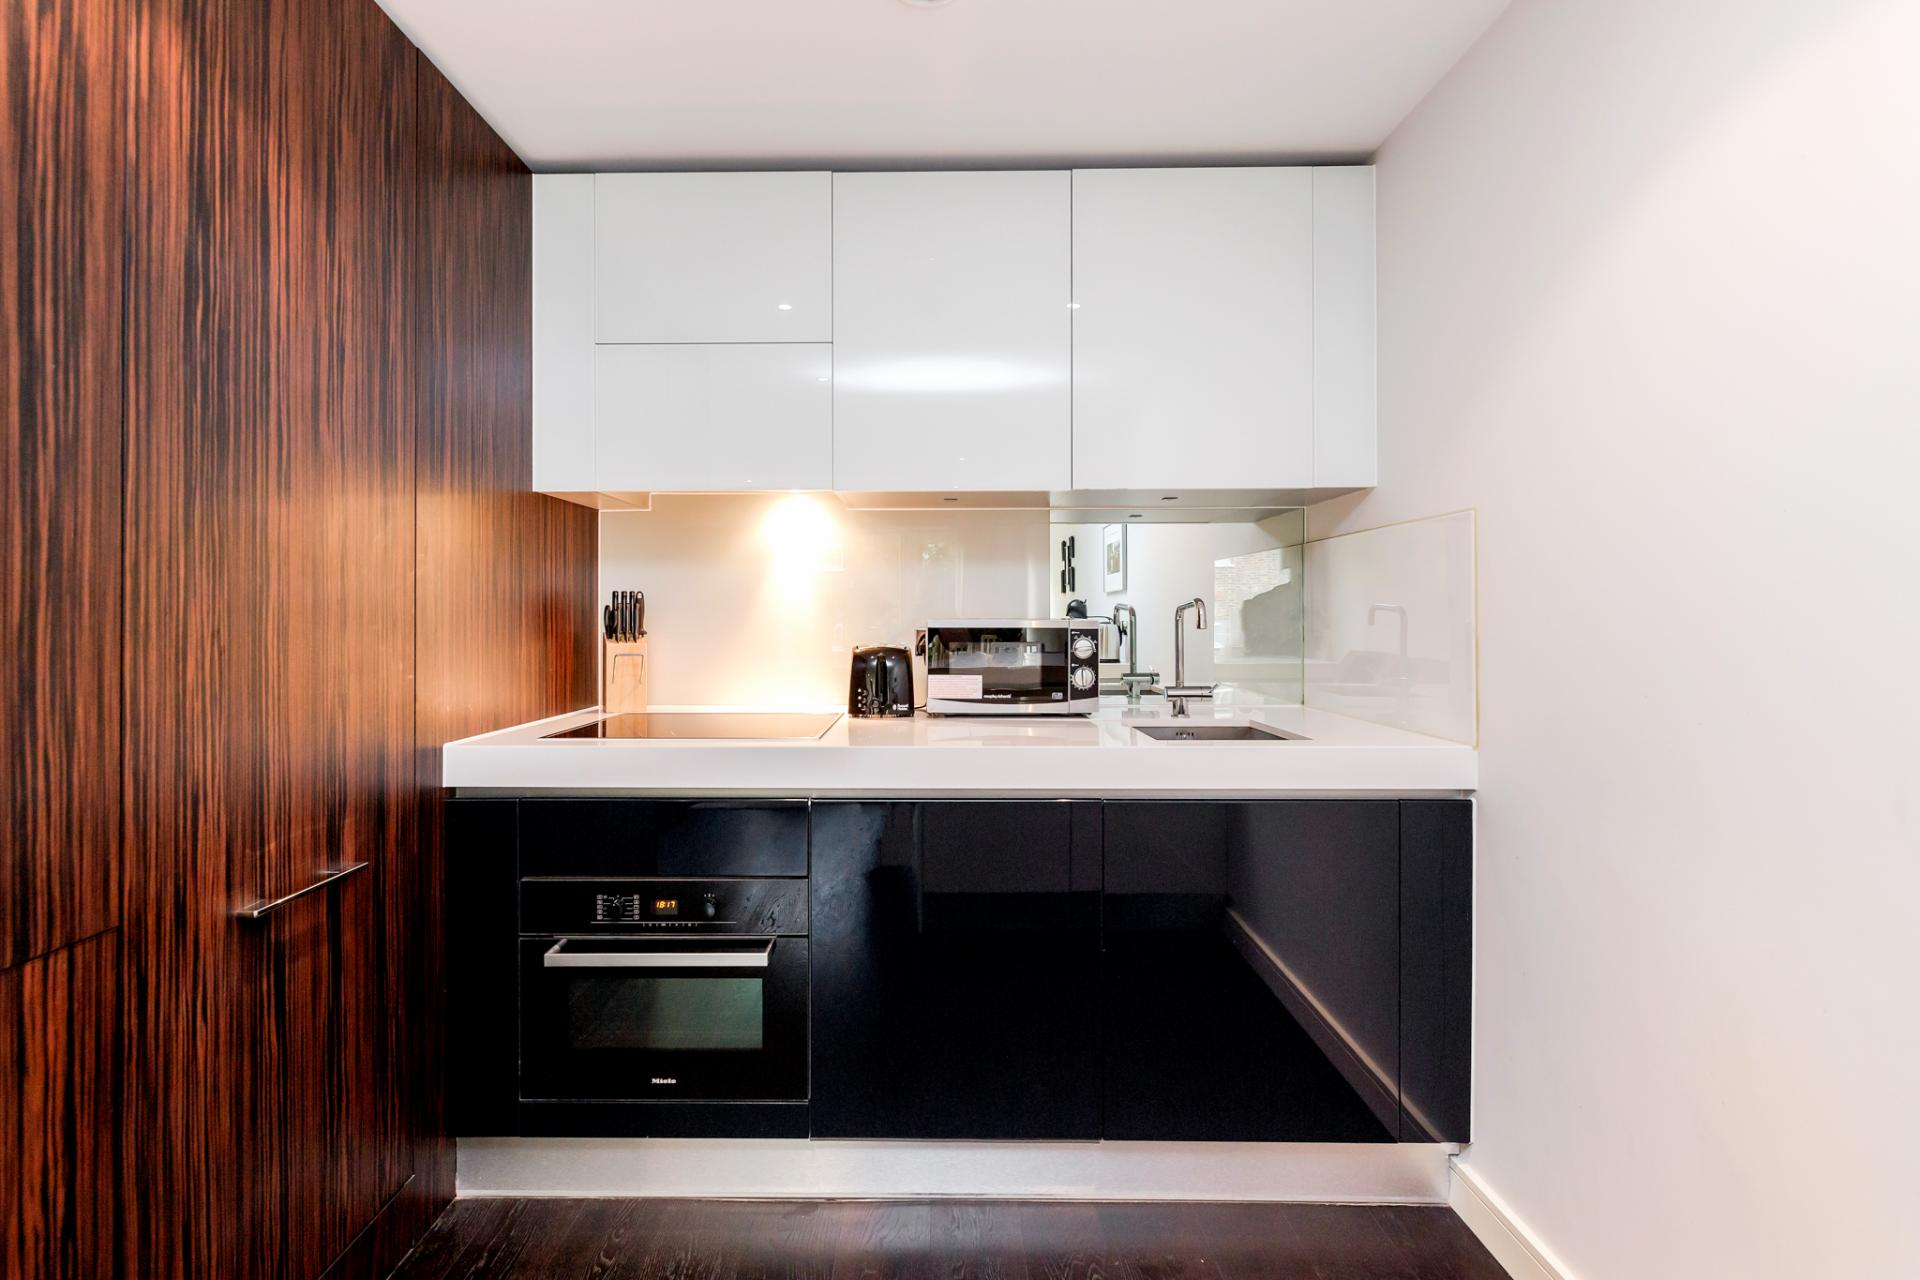 Kitchen at Chelsea Serviced Apartments, Chelsea, London - Citybase Apartments